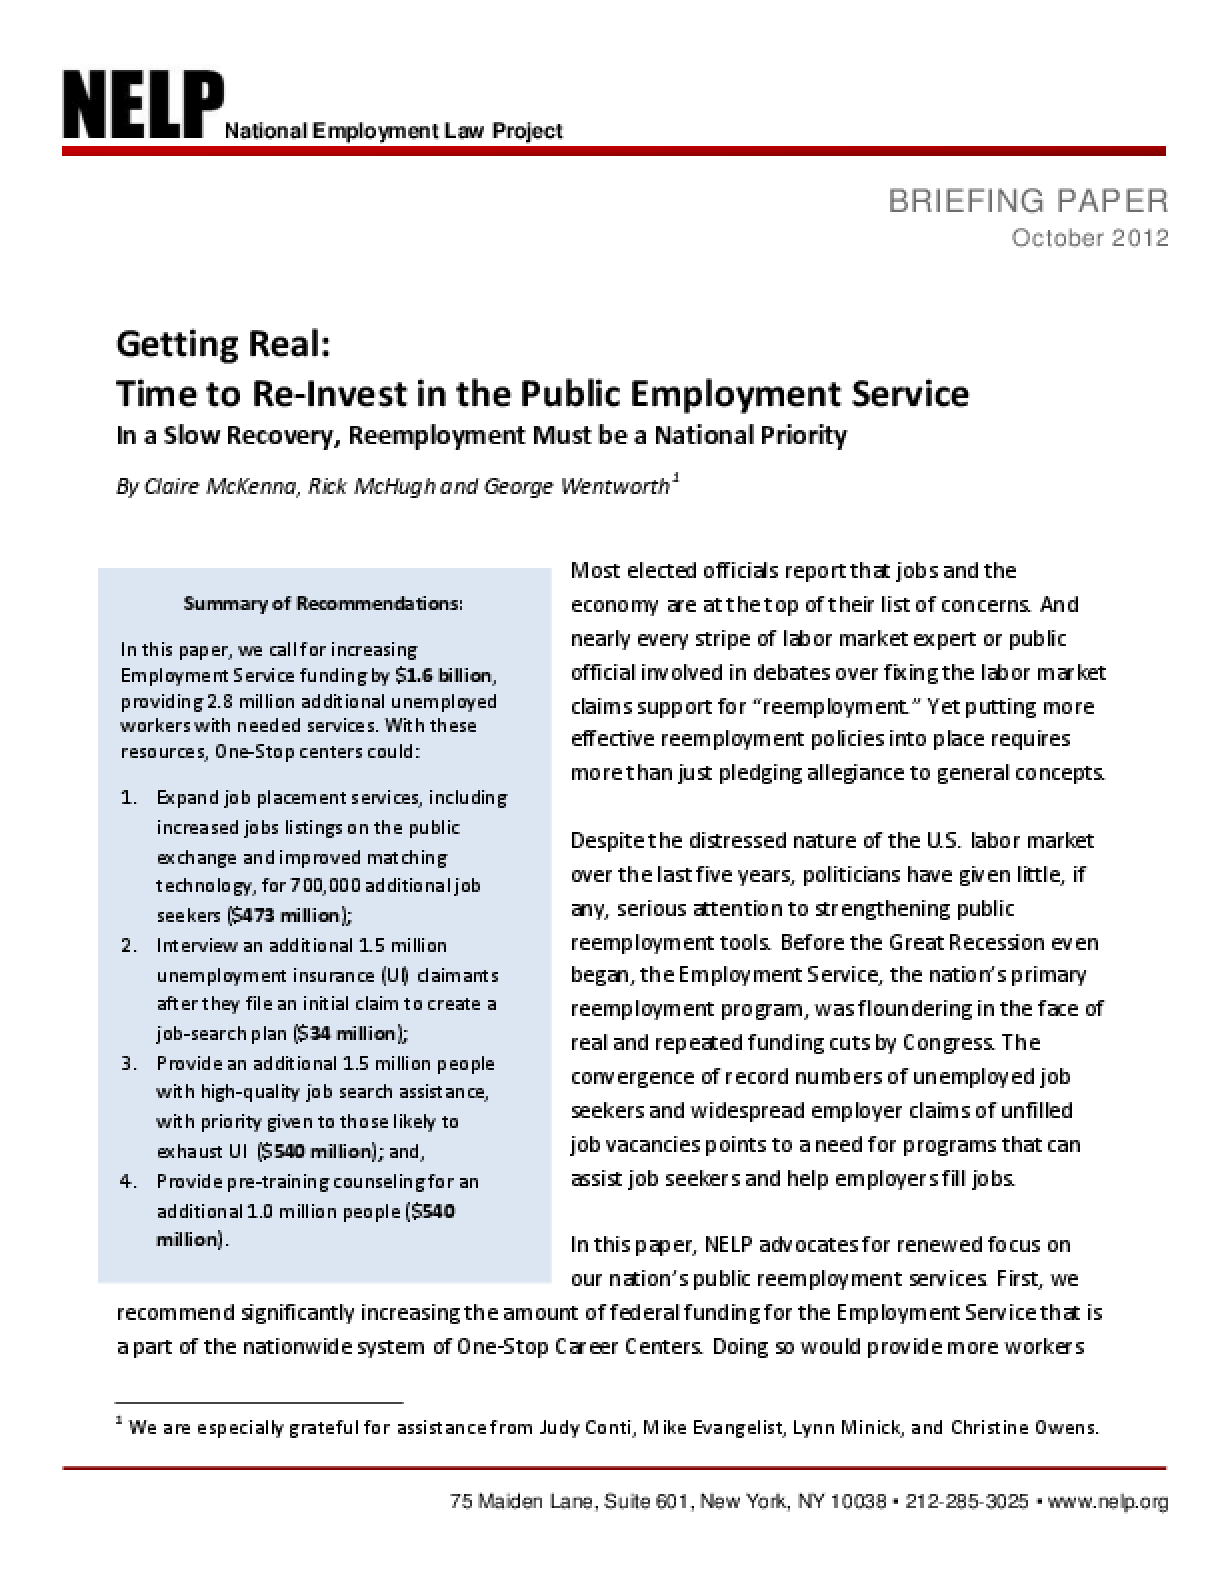 Getting Real: Time to Re-Invest in the Public Employment Service